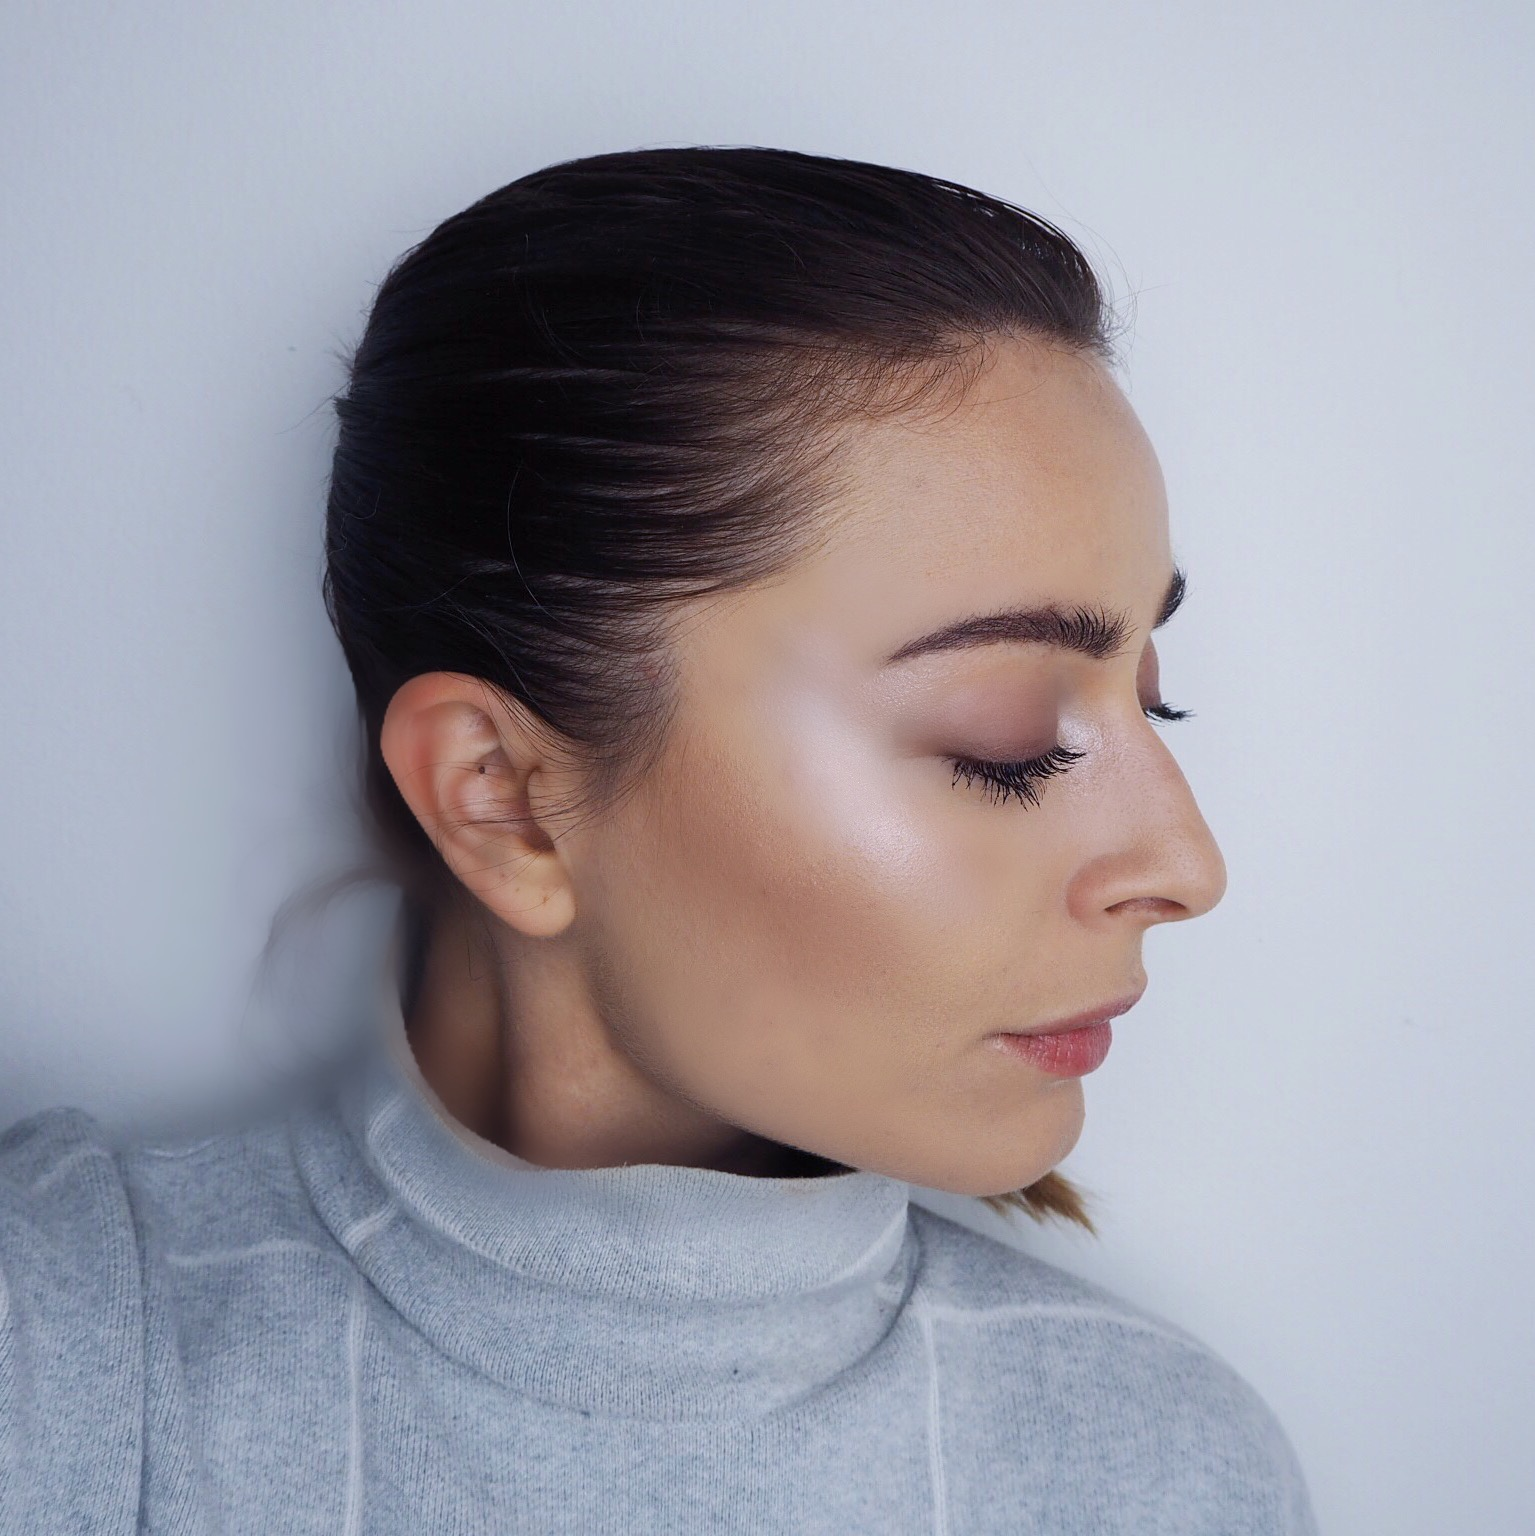 www.nellenoell.dk highlighter makeuptips naturlig glød makeup makeup tips